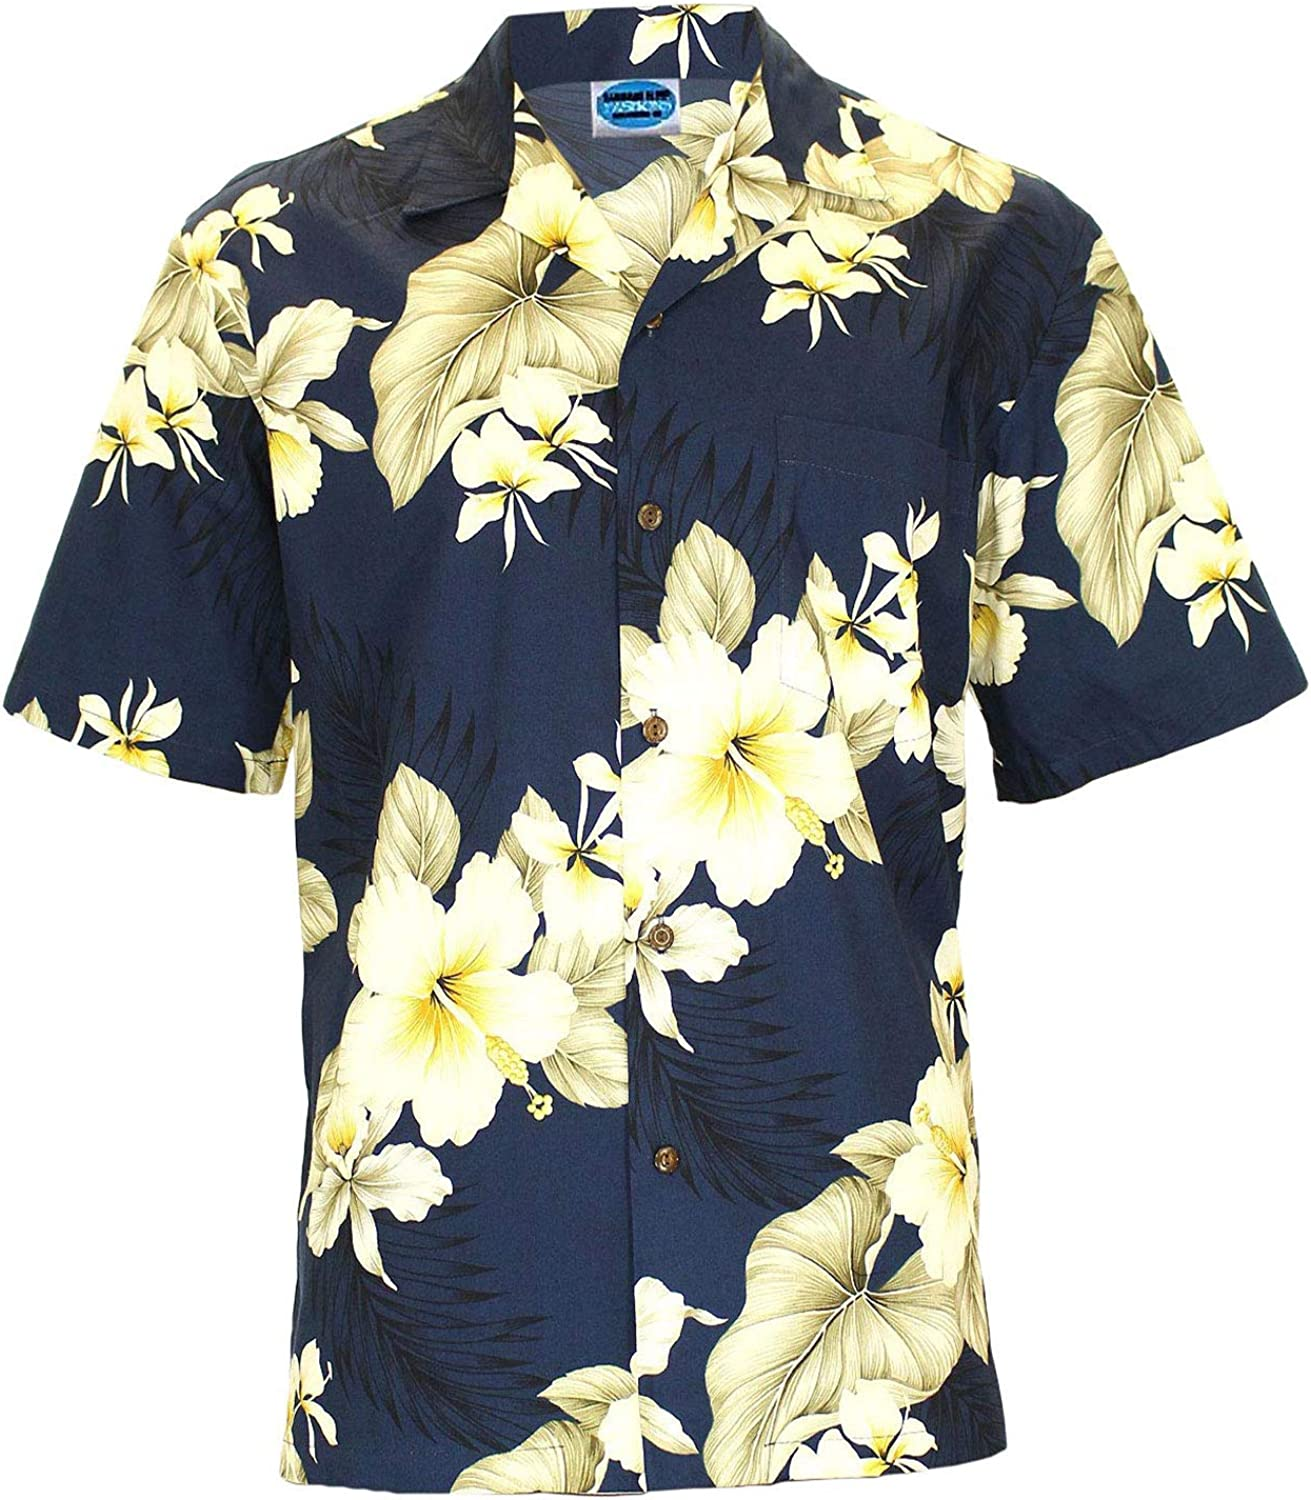 Classic Print Hawaiian Shirts in Cotton Hibiscus Trend Open Collar Style